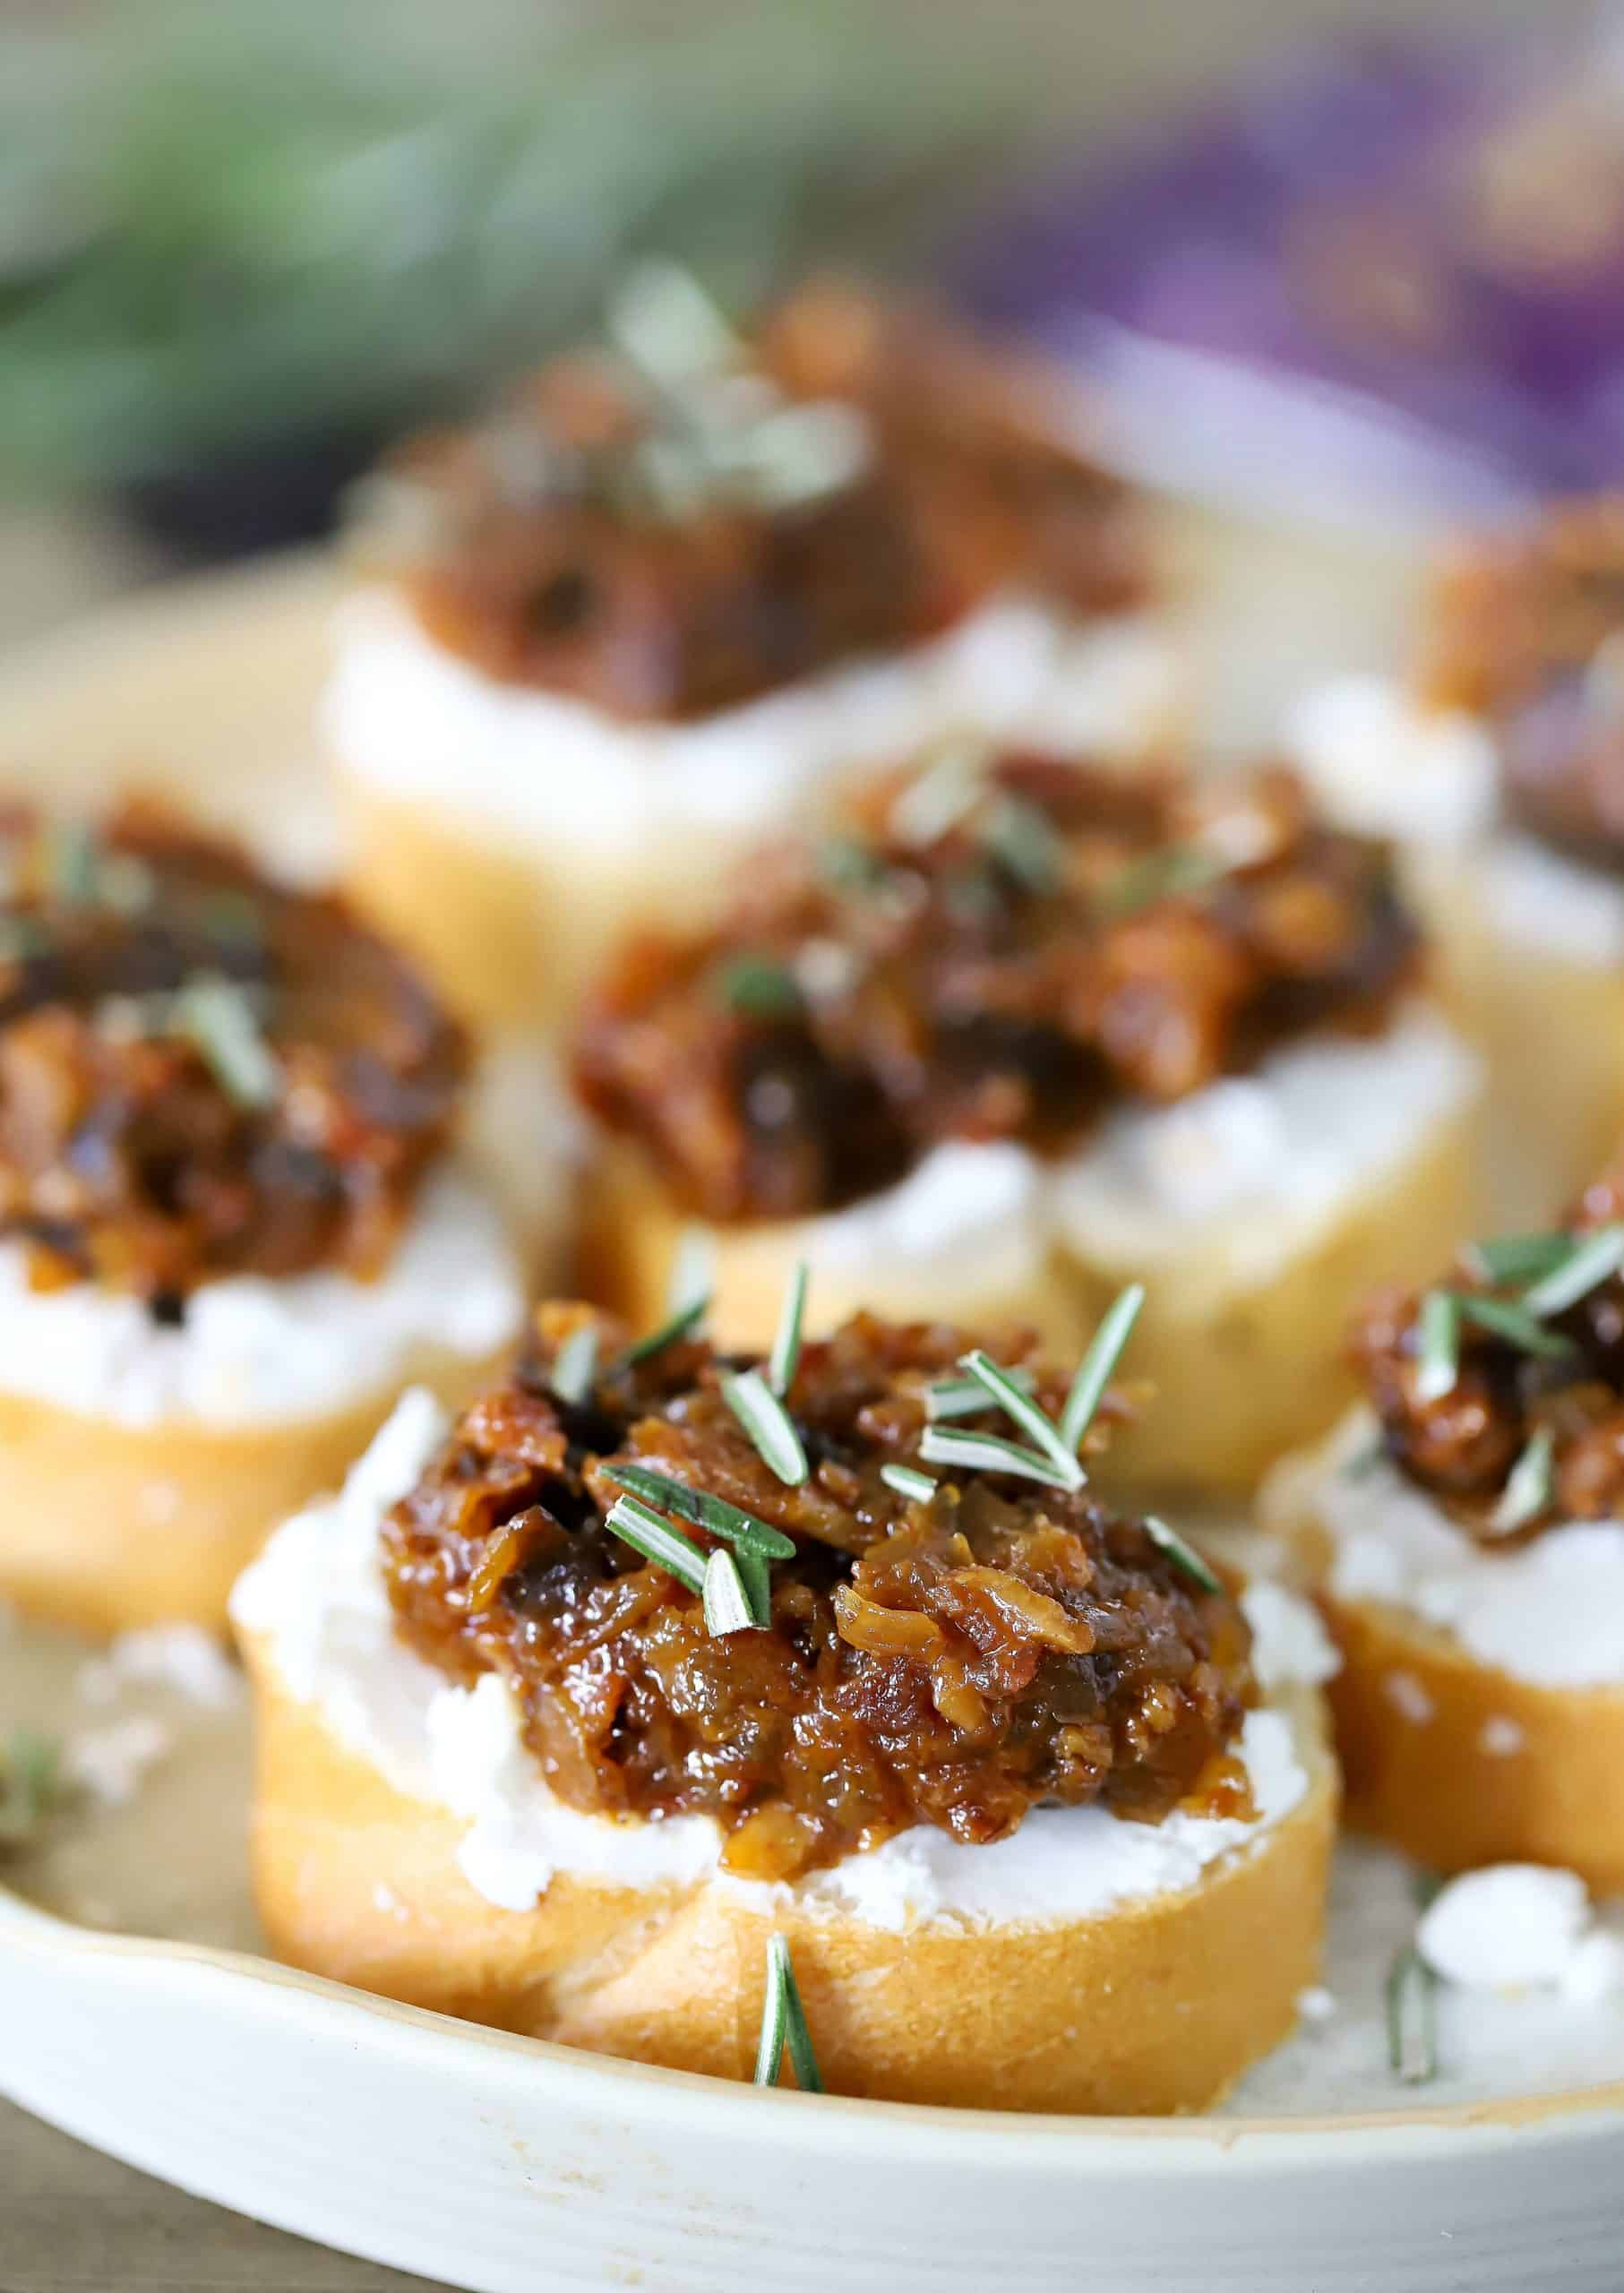 Layered Crostini's on a white plate.